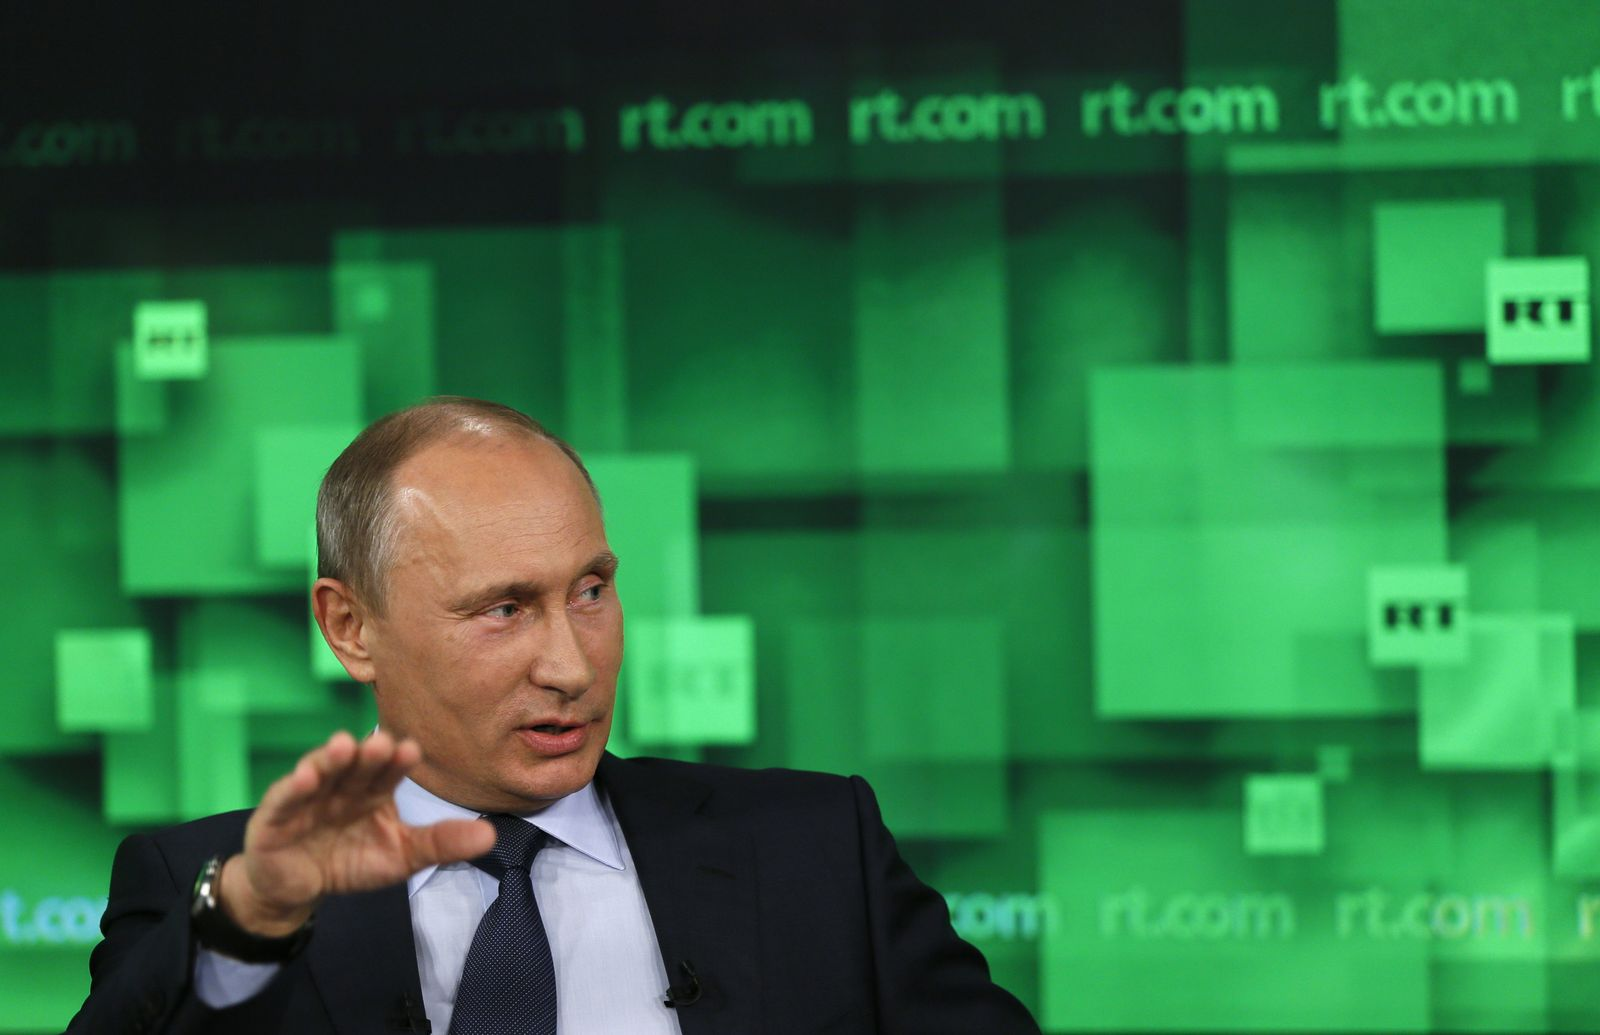 New Book On Vladimir Putin Claims Russian President Flees From People Der Spiegel